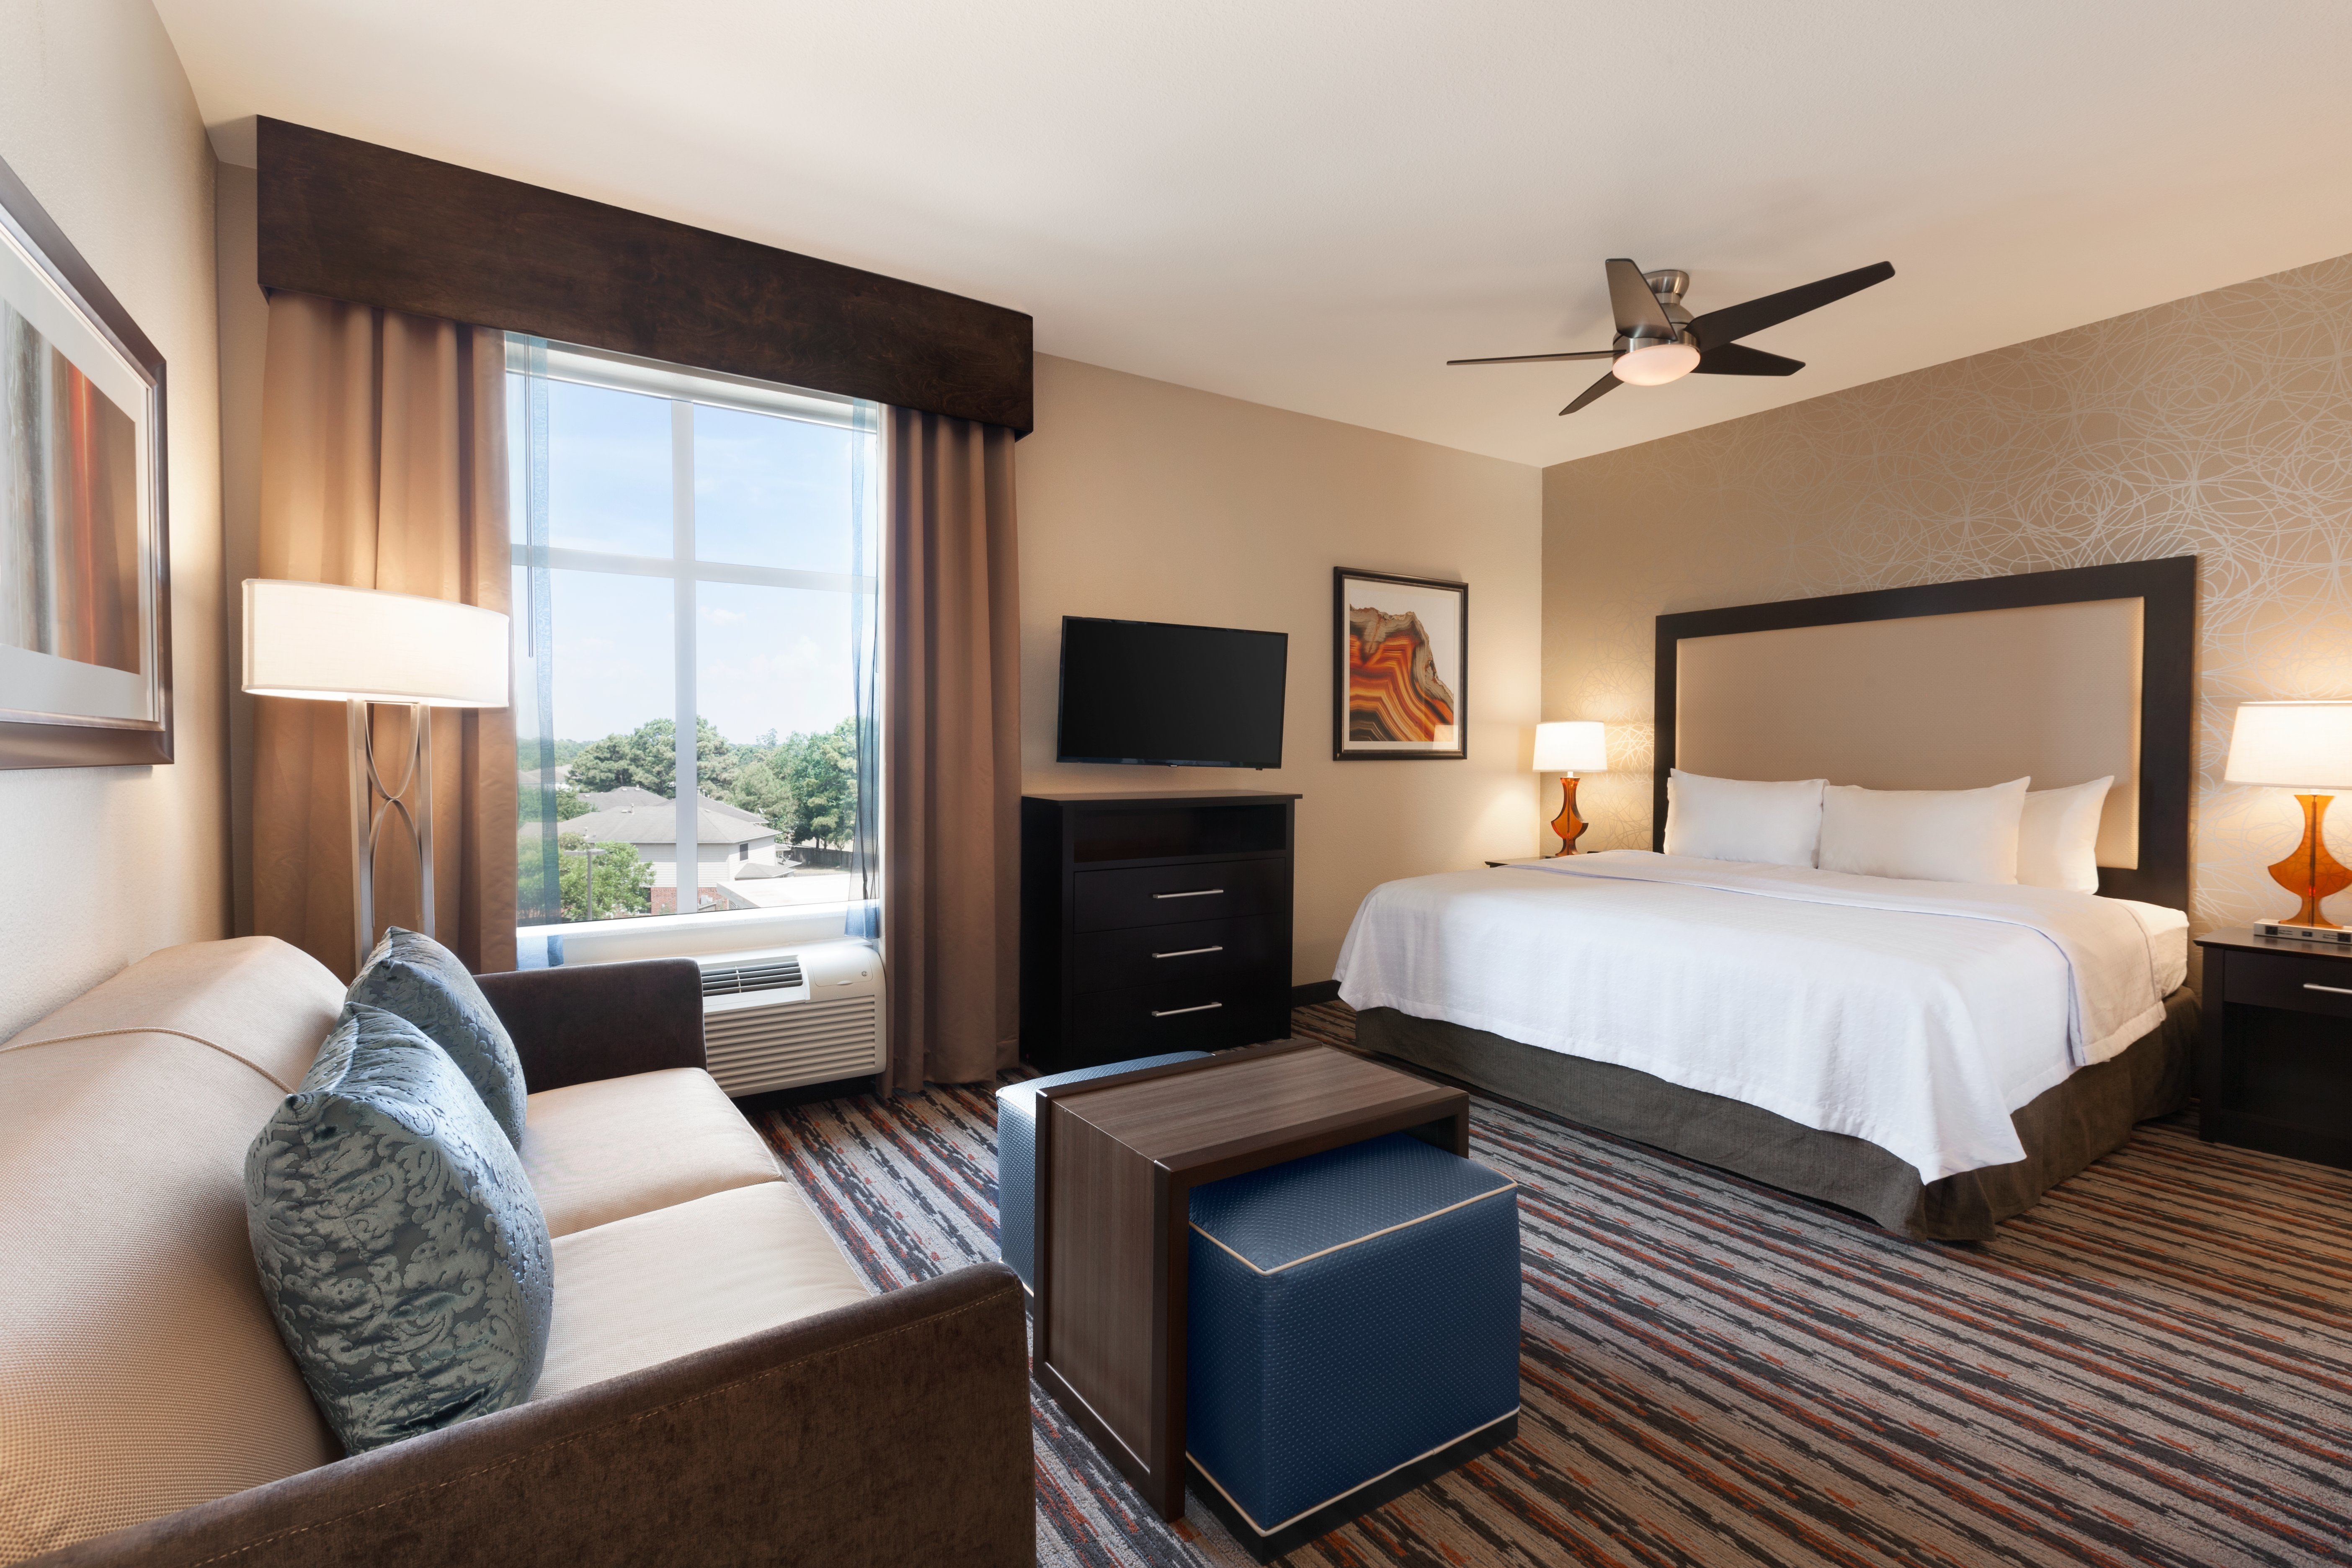 Homewood Suites by Hilton North Houston/Spring image 0